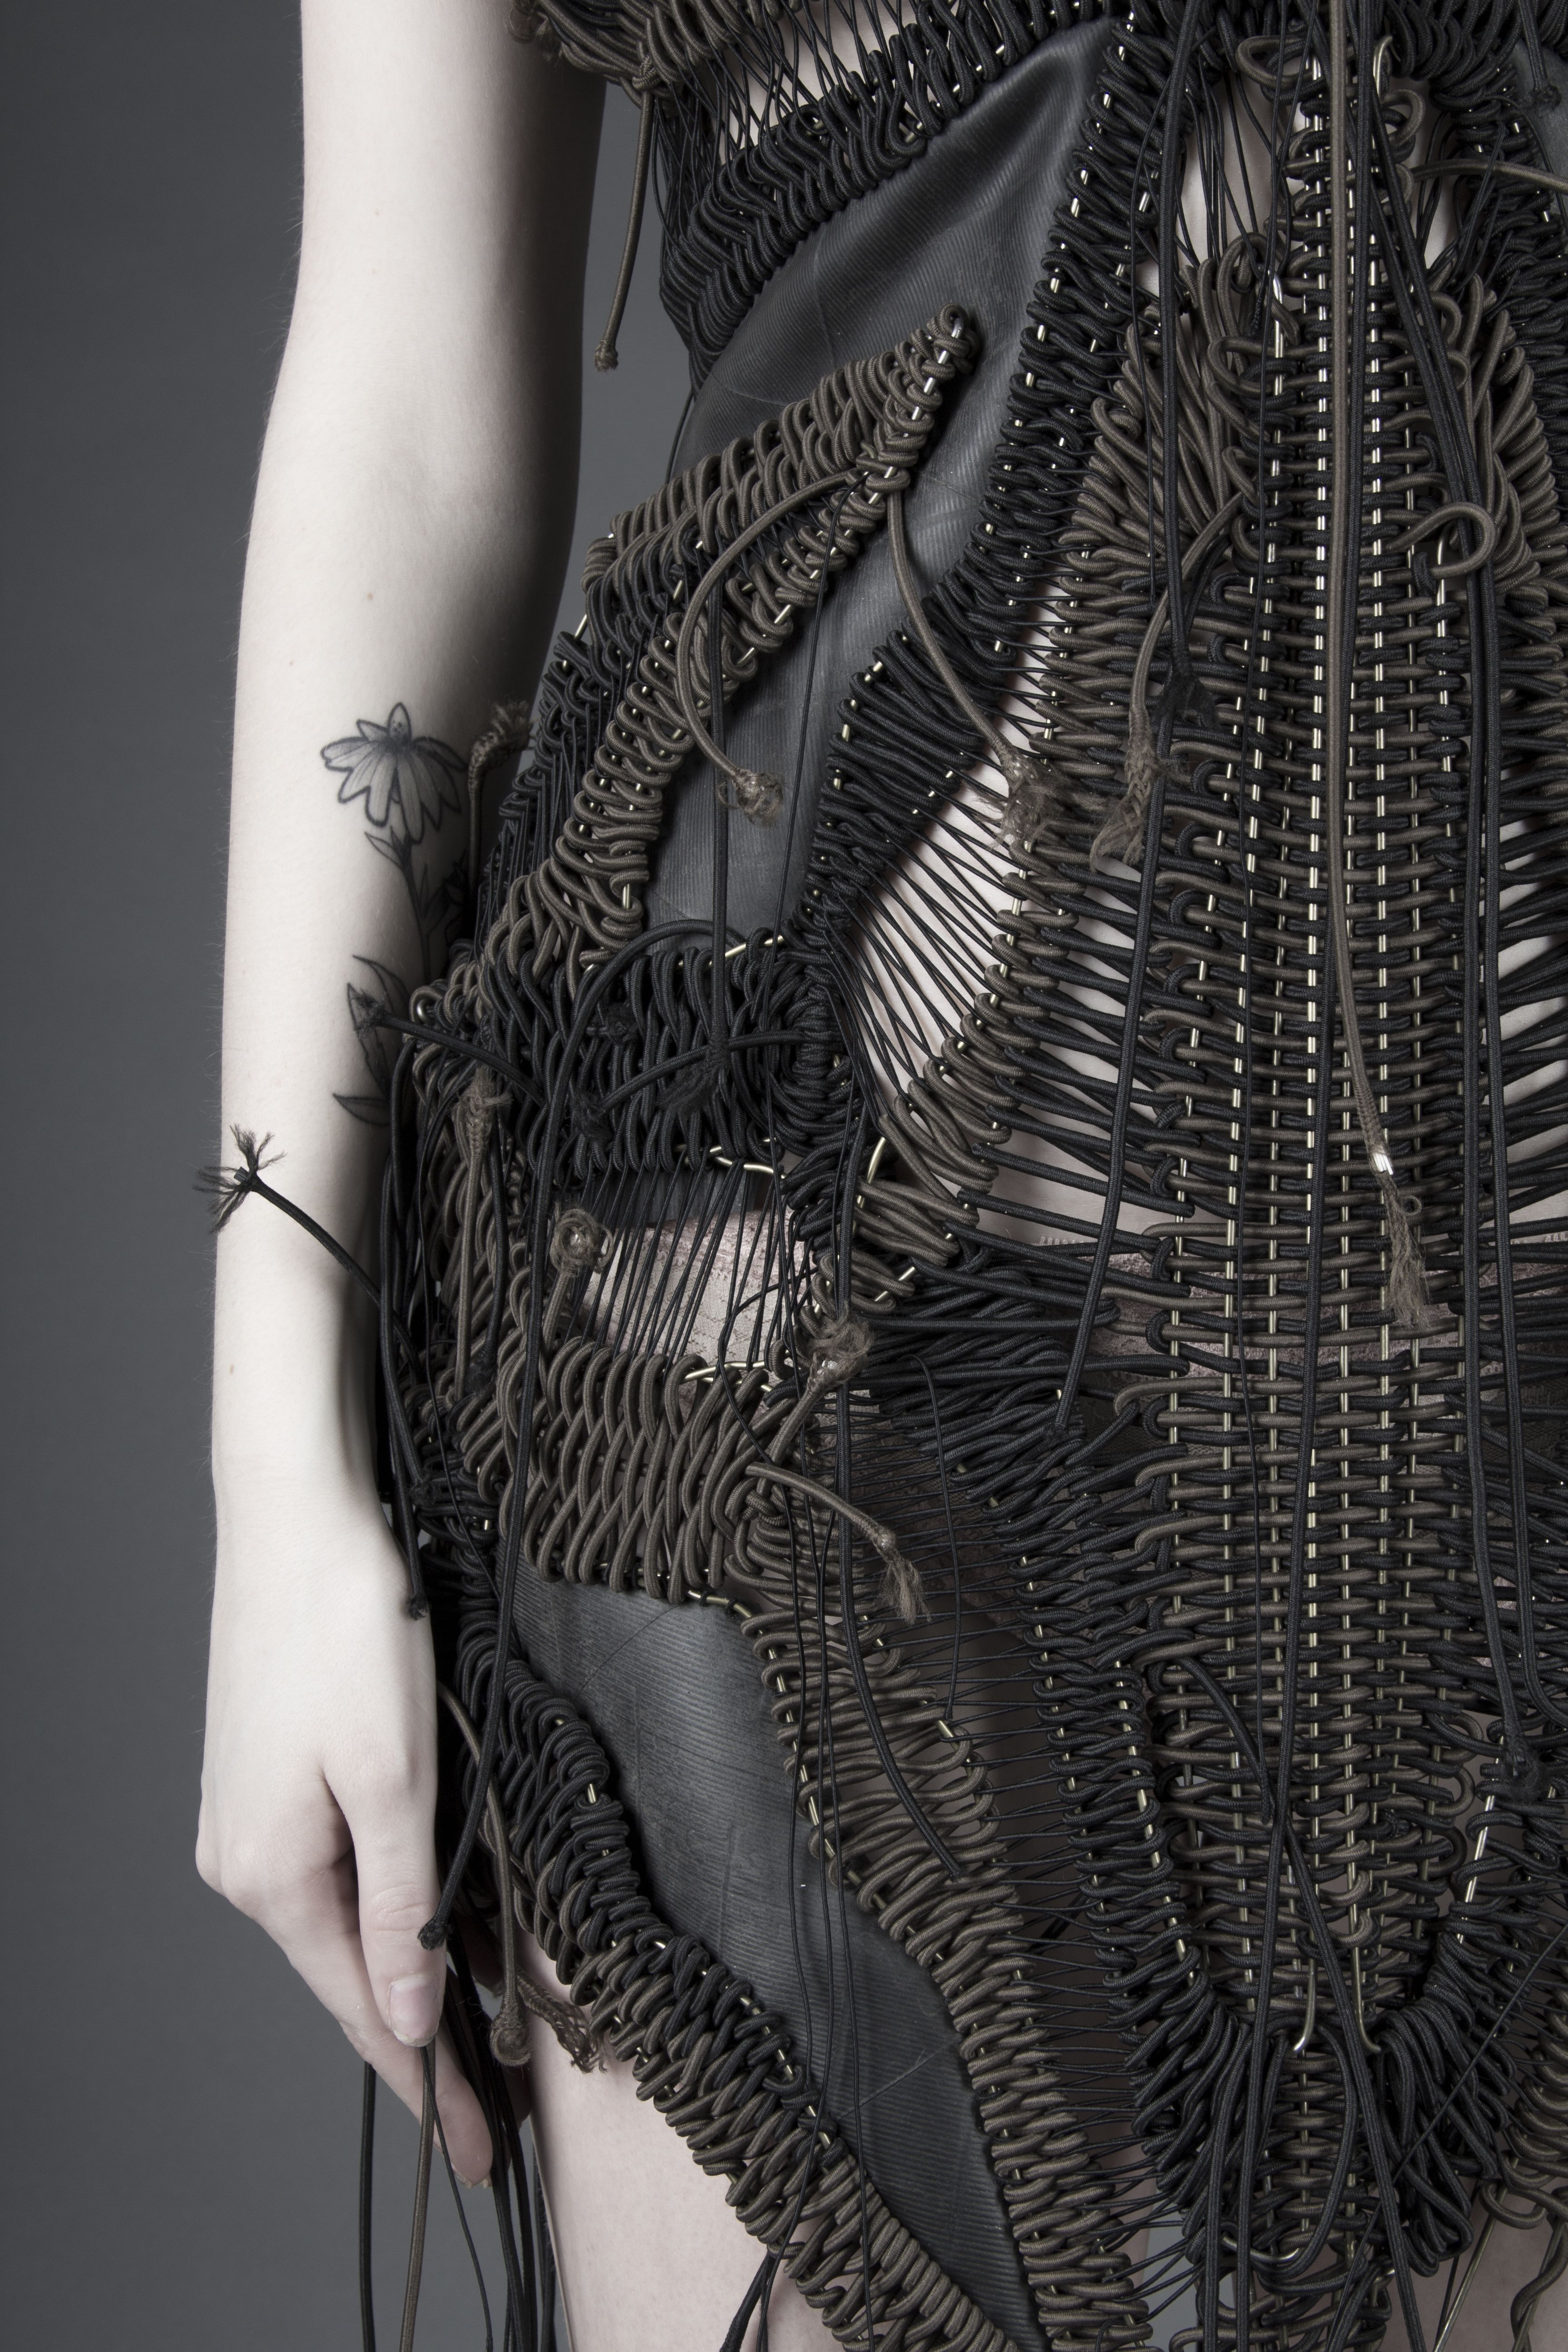 Design by Ellie Lindholm. Recycled tire, wire hangers, and elastic ...